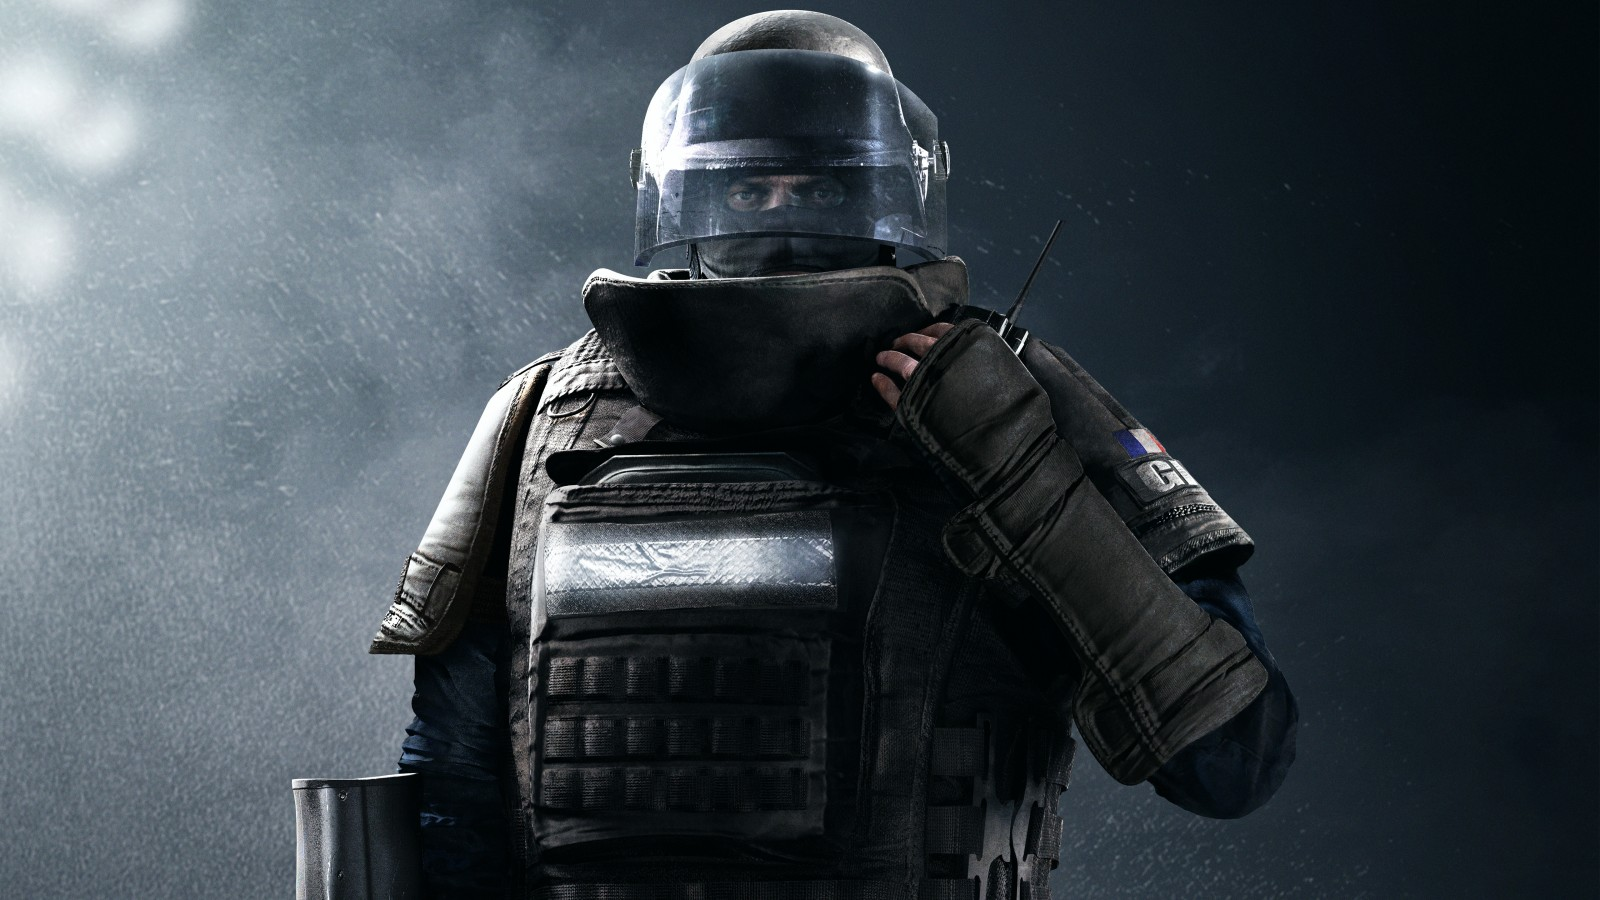 Apple Iphone X Wallpaper Hd Rainbow Six Siege Gign Rook 5k Wallpapers Hd Wallpapers